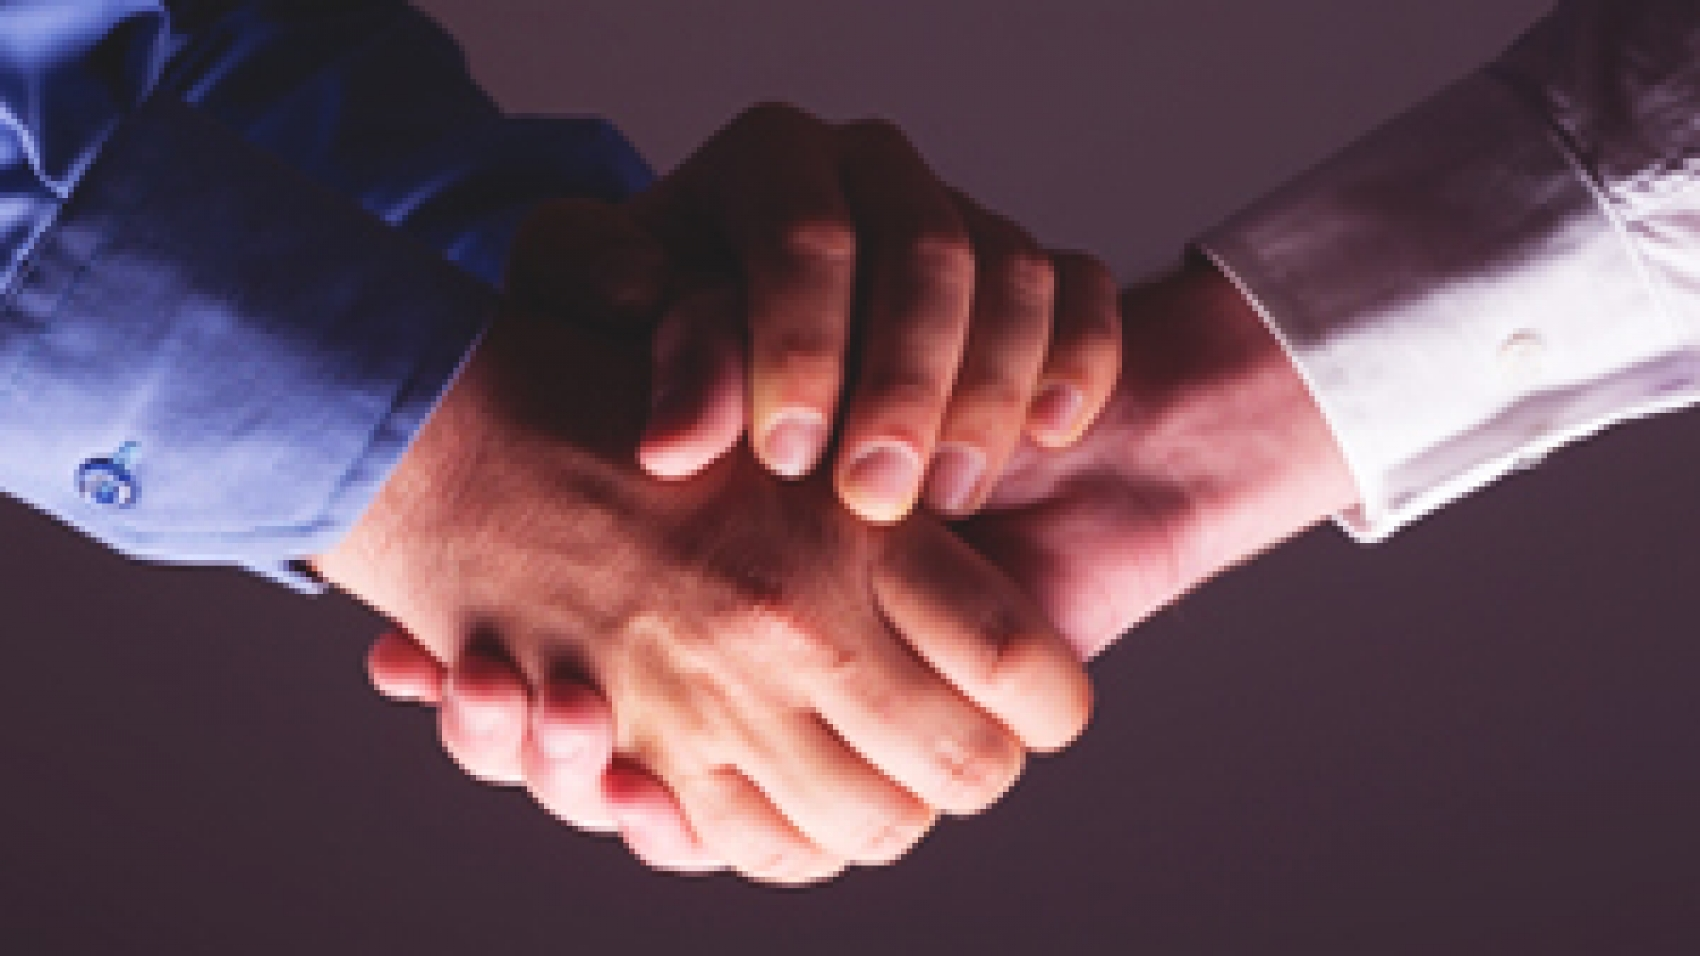 outsourcing partner shaking hands